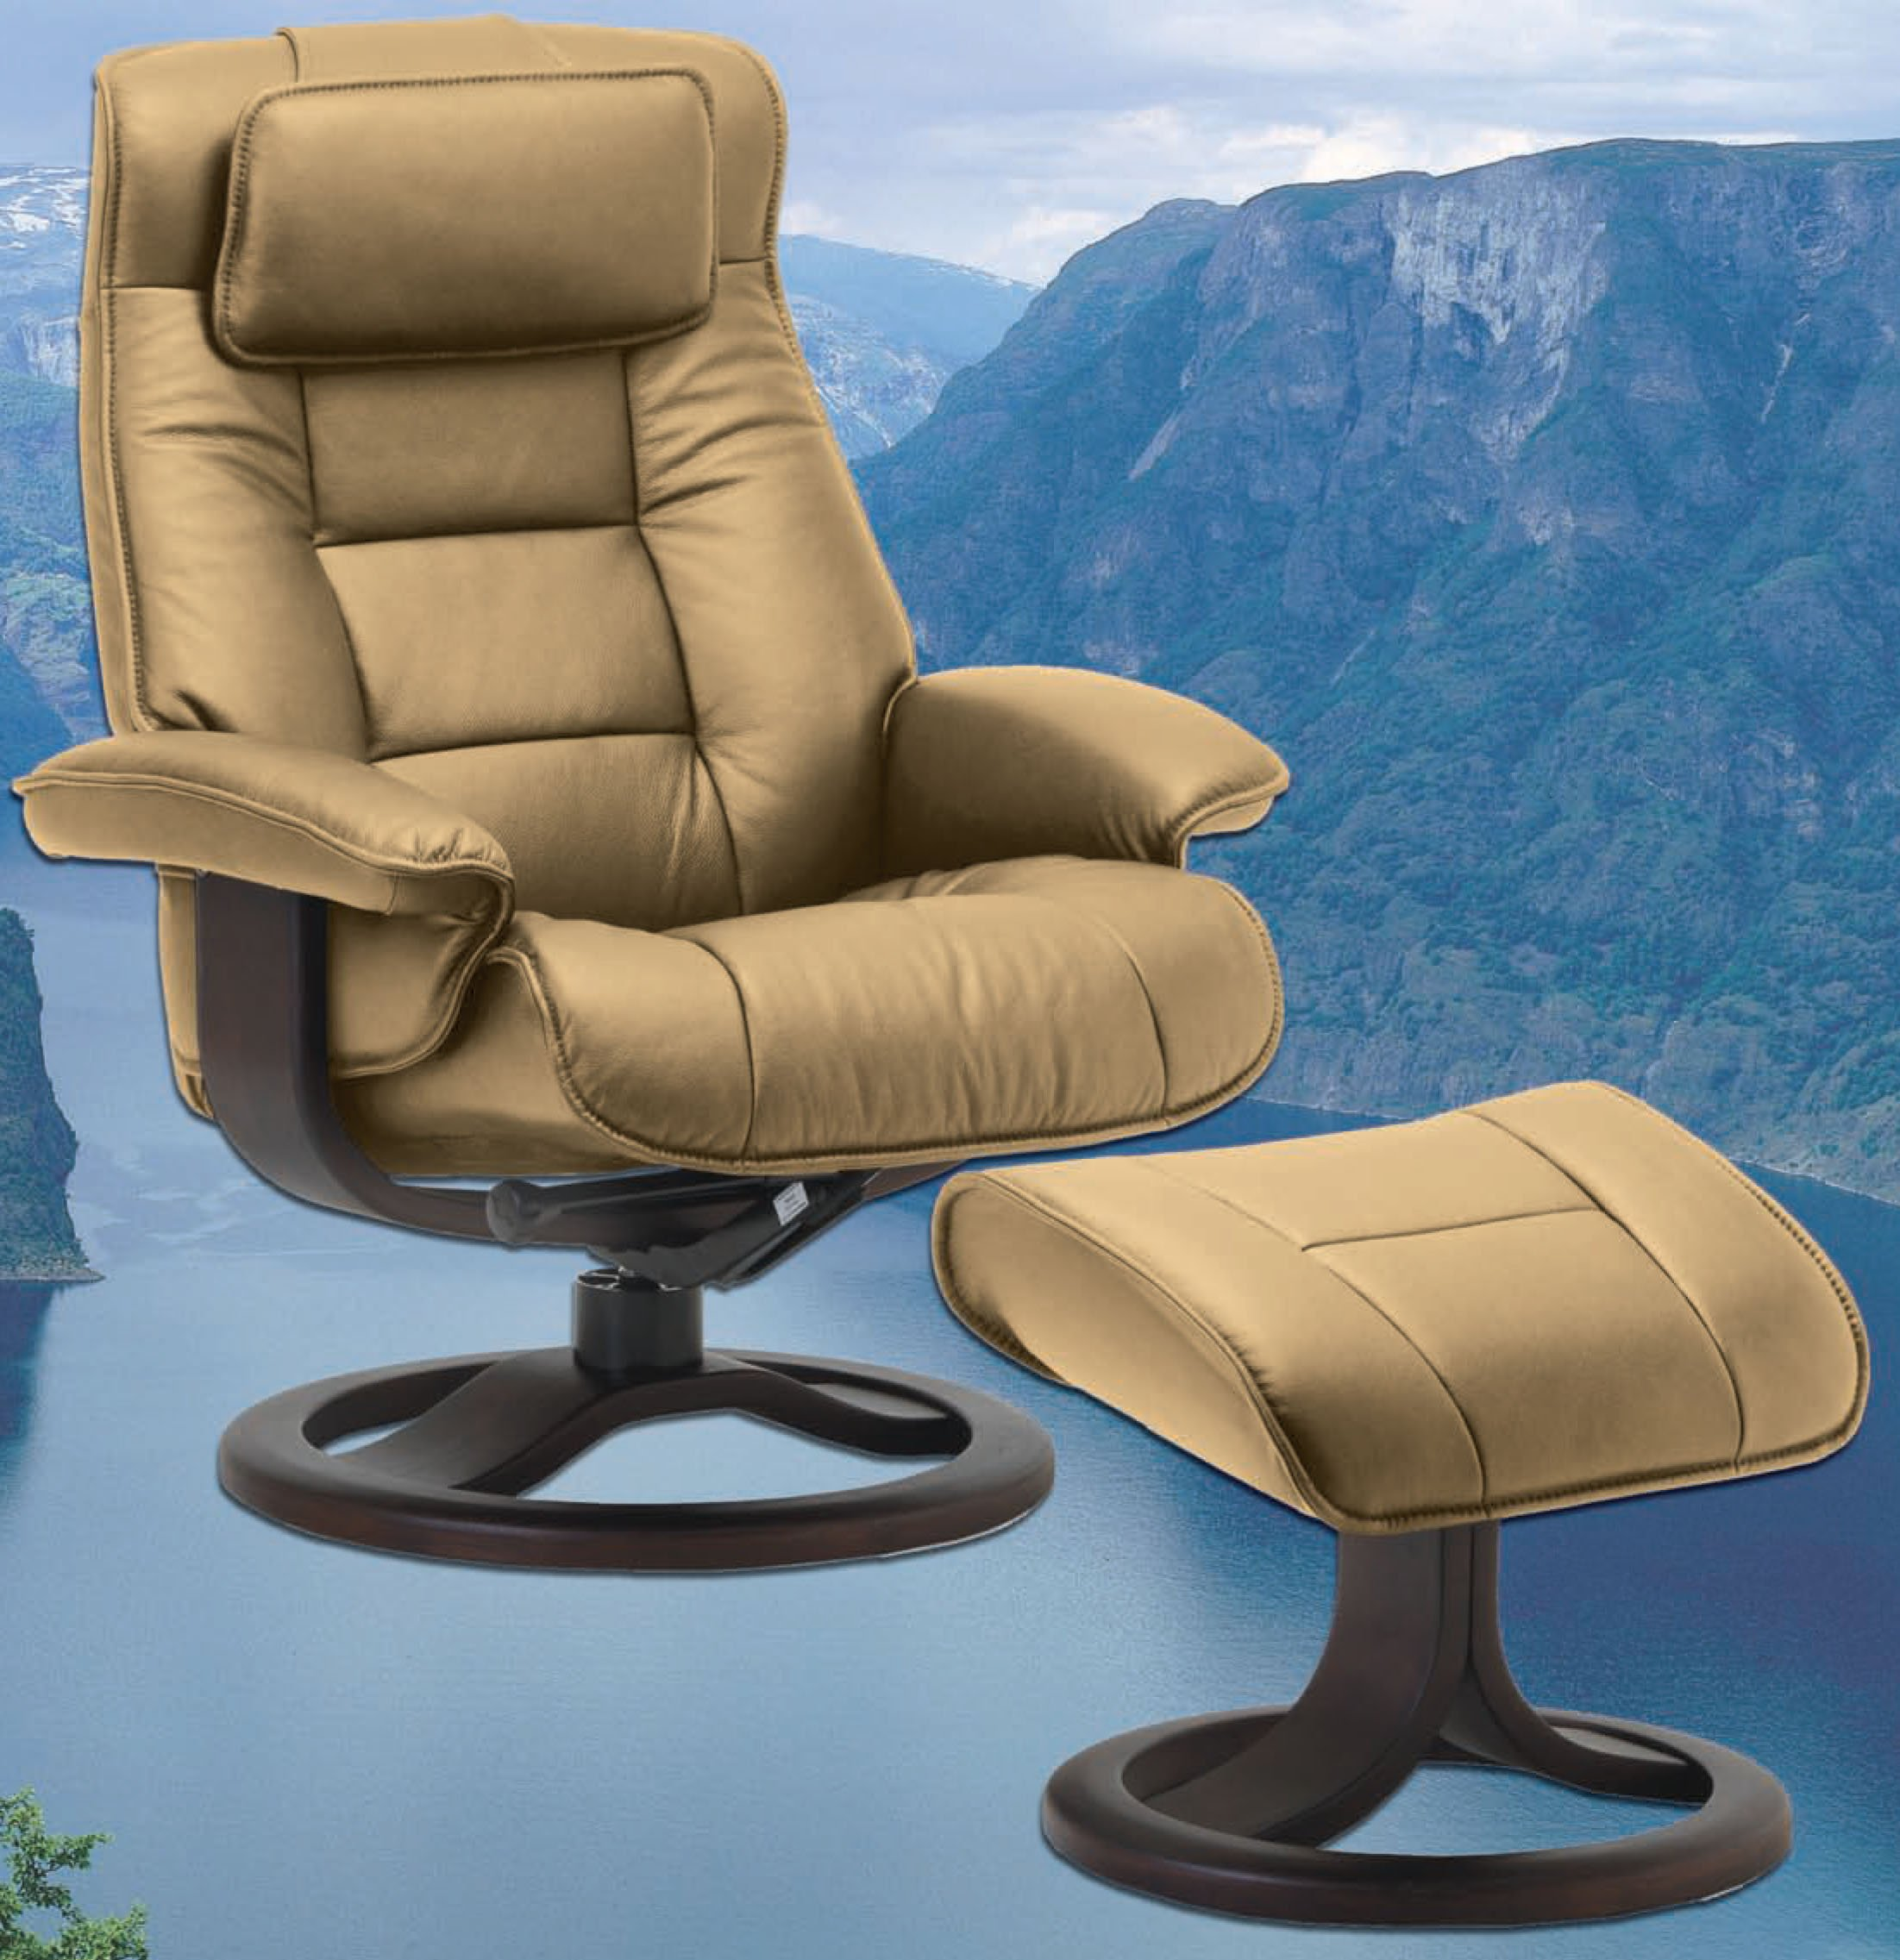 Leather Recliner Chair With Ottoman Fjords Mustang Large Leather Recliner And Ottoman Norwegian Ergonomic Scandinavian Reclining Chair In Nordic Line Genuine Sandel Light Brown Leather